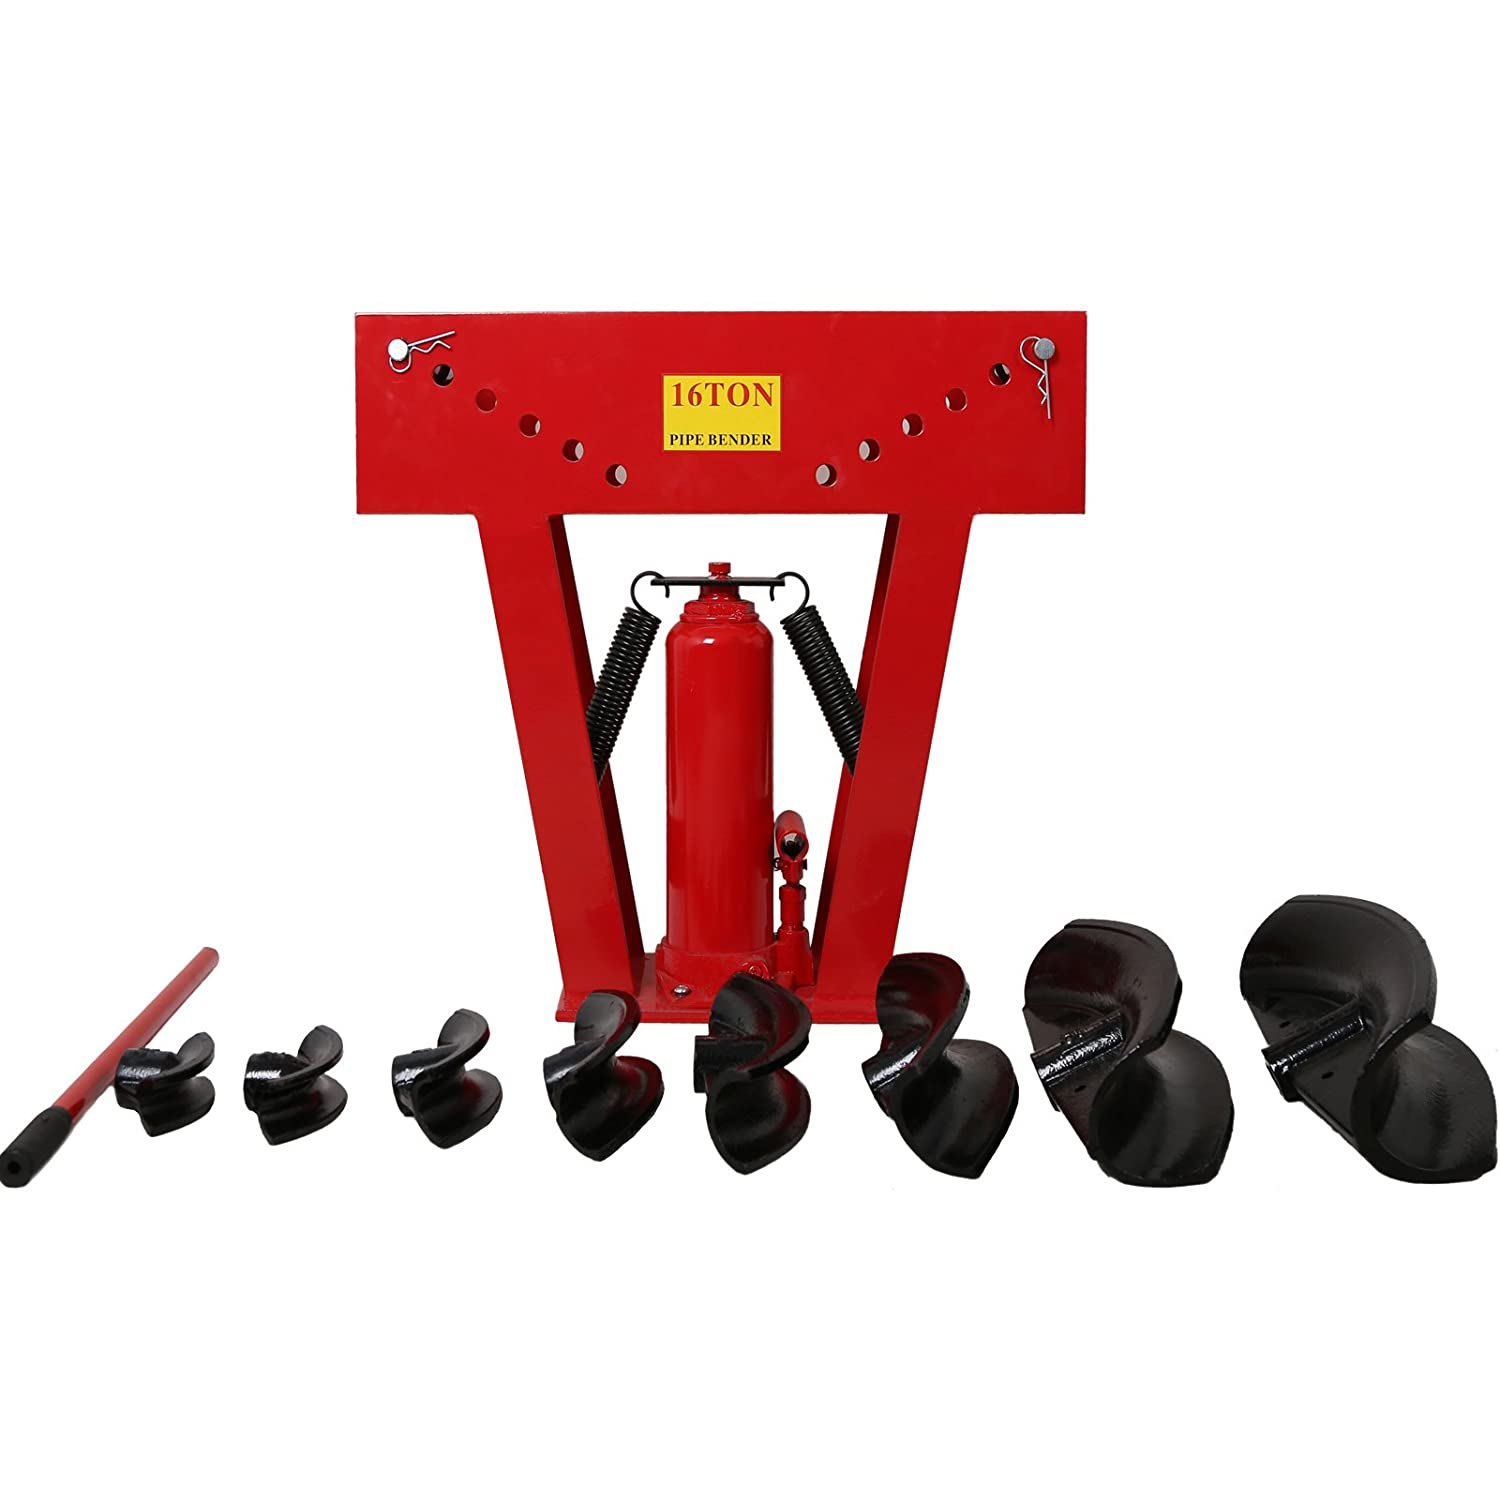 TIMBERTECH Pipe Hydraulic Bender for Cars and Heating Systems 12 T with 6 Dies